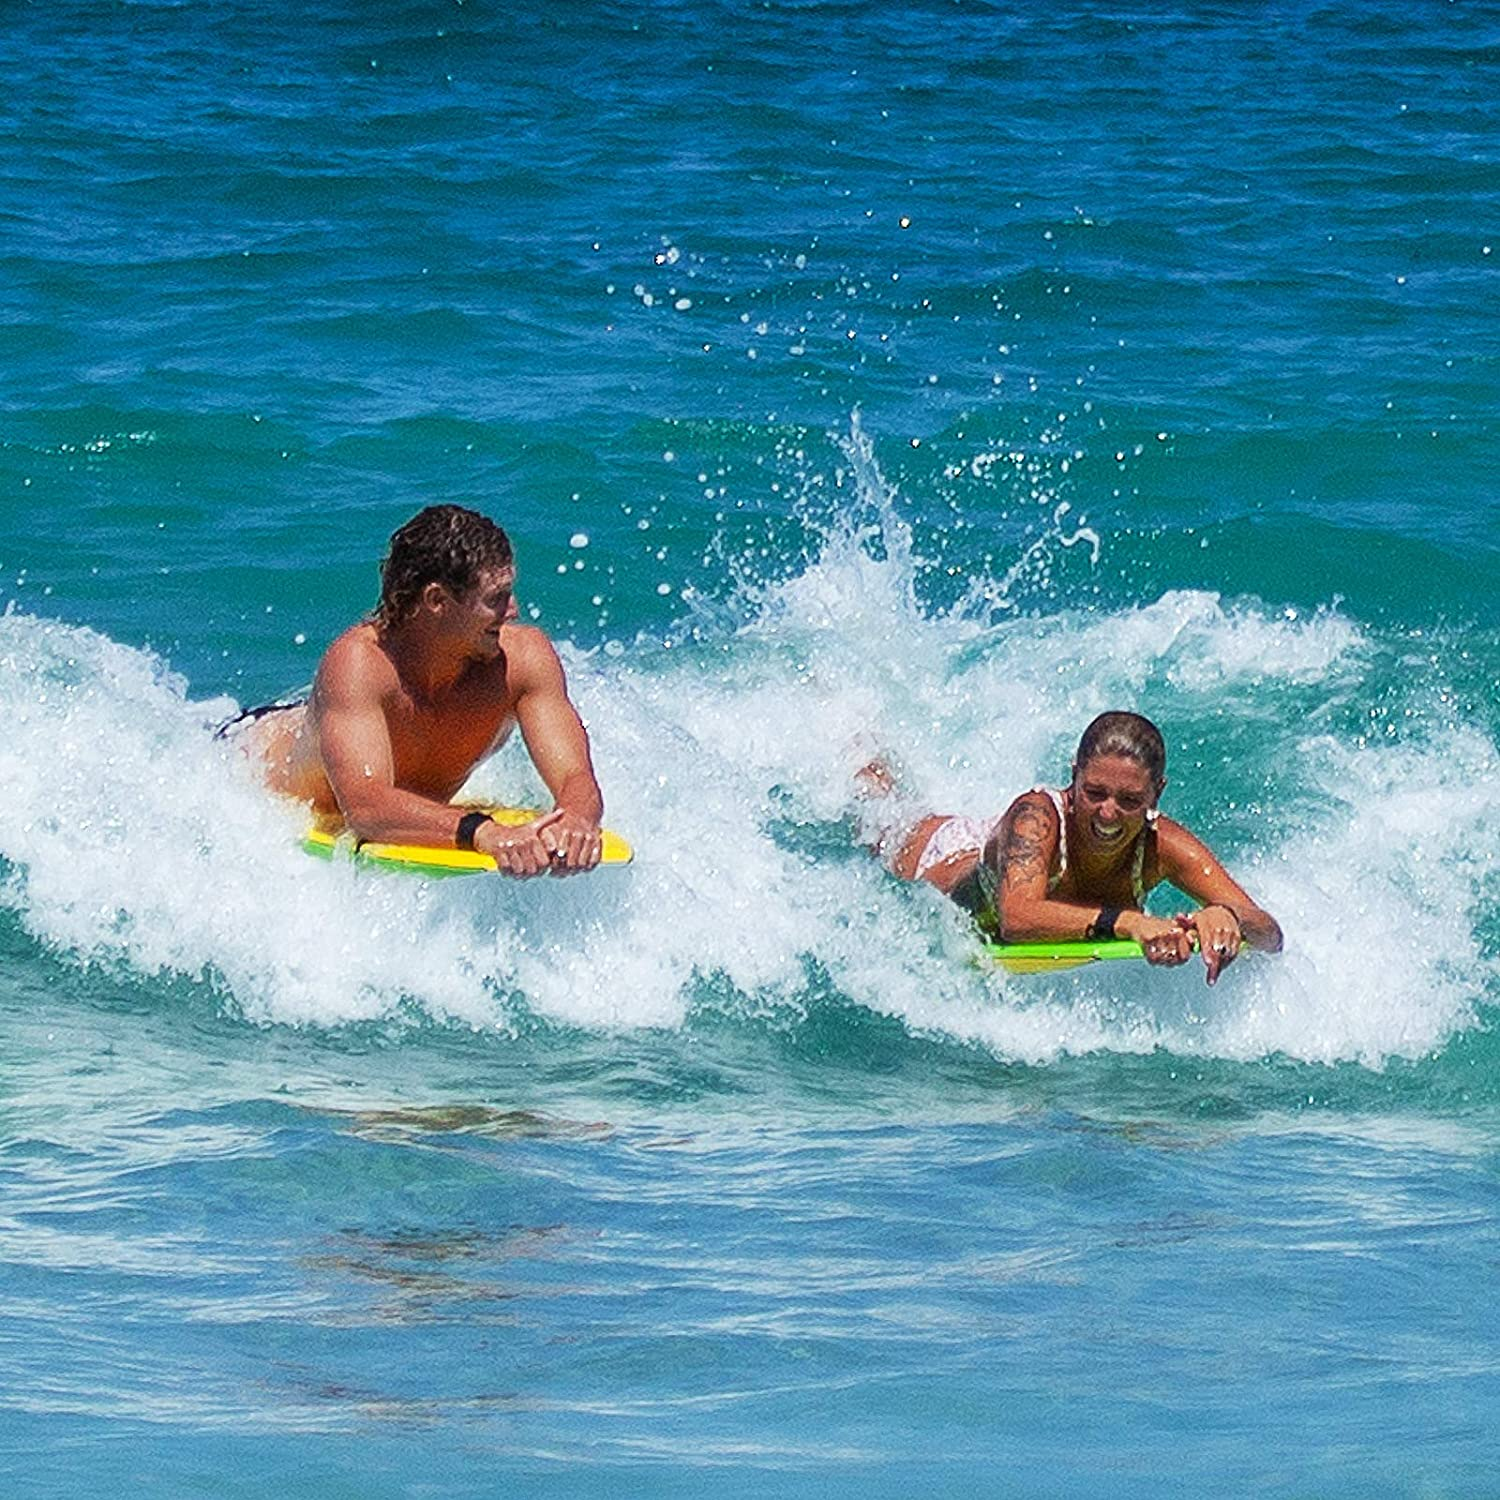 Solid Universal Imperium Loggerhead Body Board a Great Boogie Board for Fun at The Beach Lightweight Construction Suitable for Adults and Kids